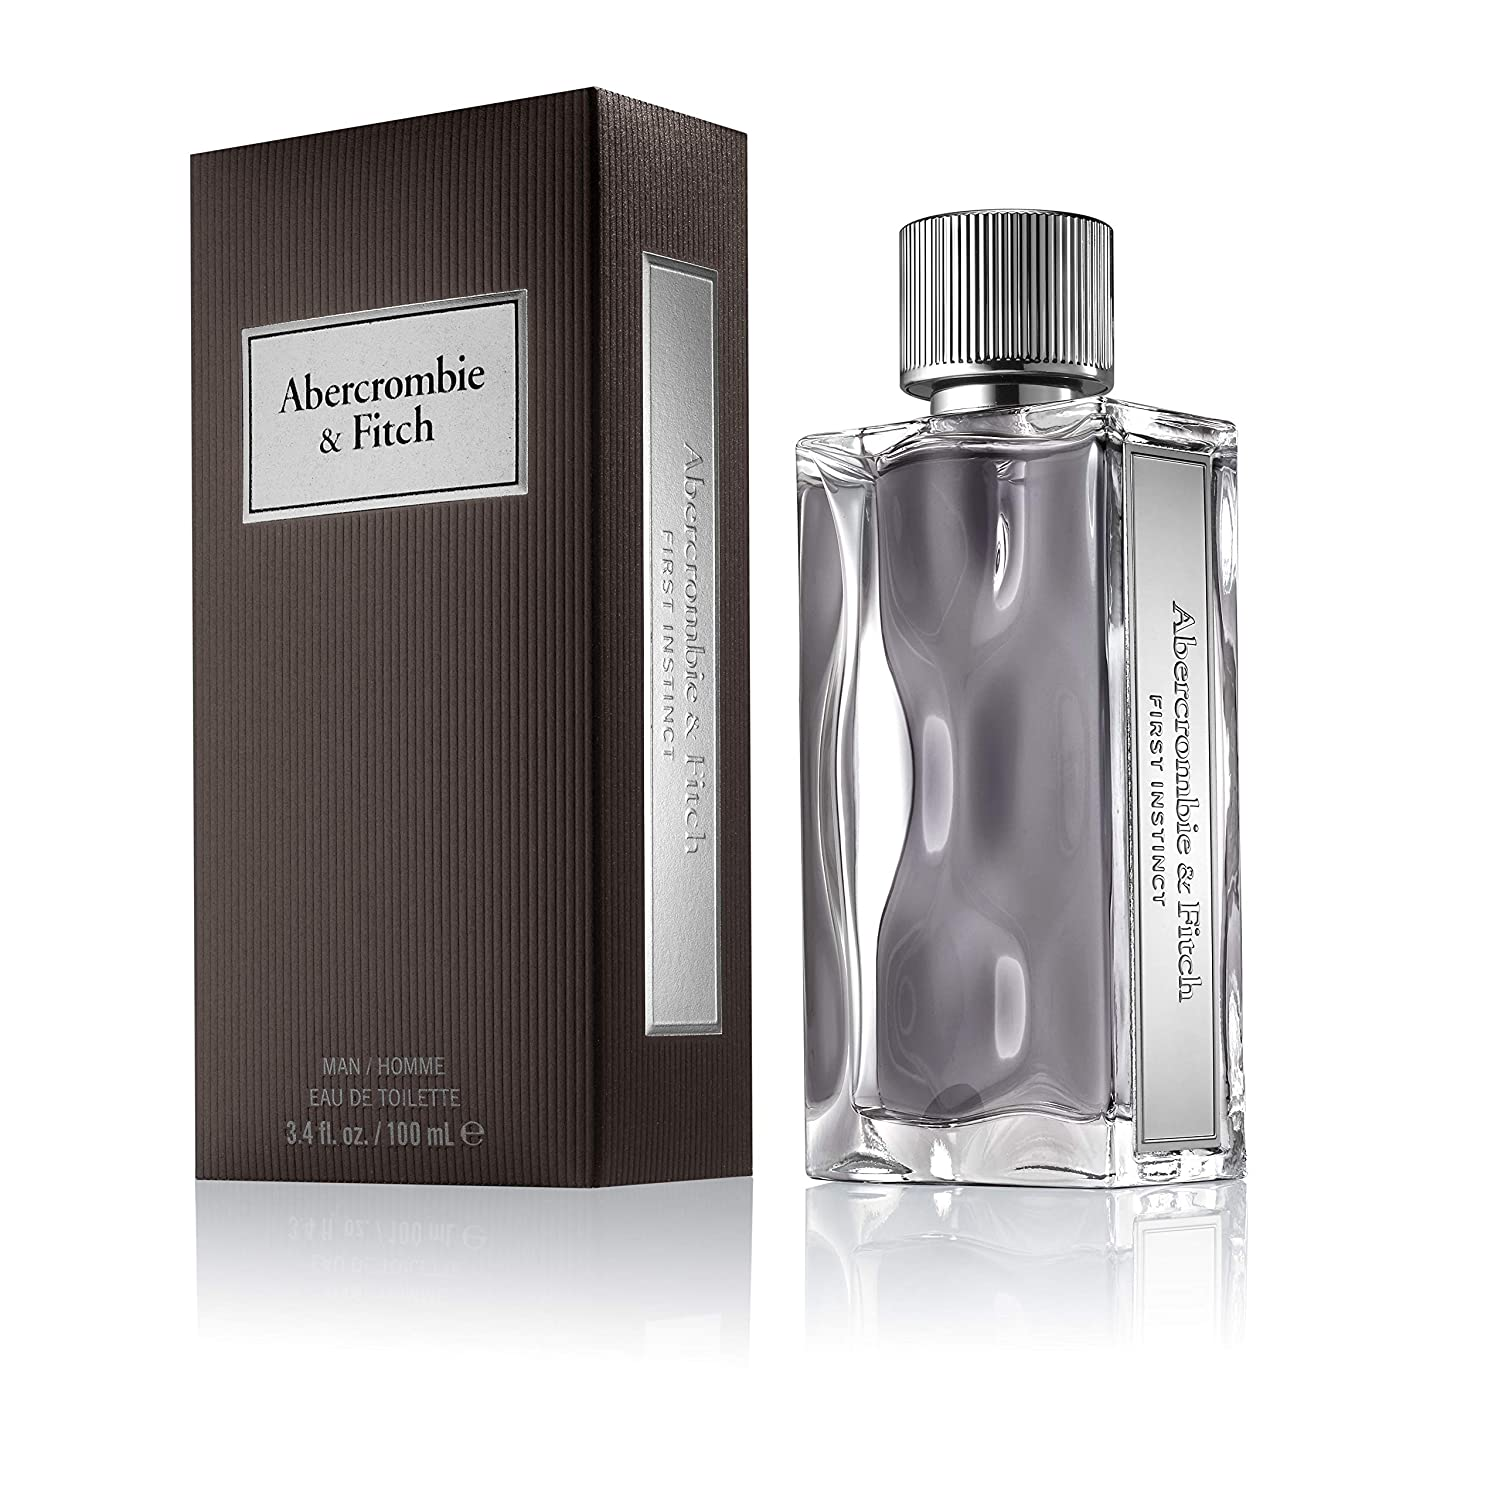 88e20d39f Abercrombie & Fitch First Instinct Cologne, 100 ml: Amazon.co.uk: Beauty